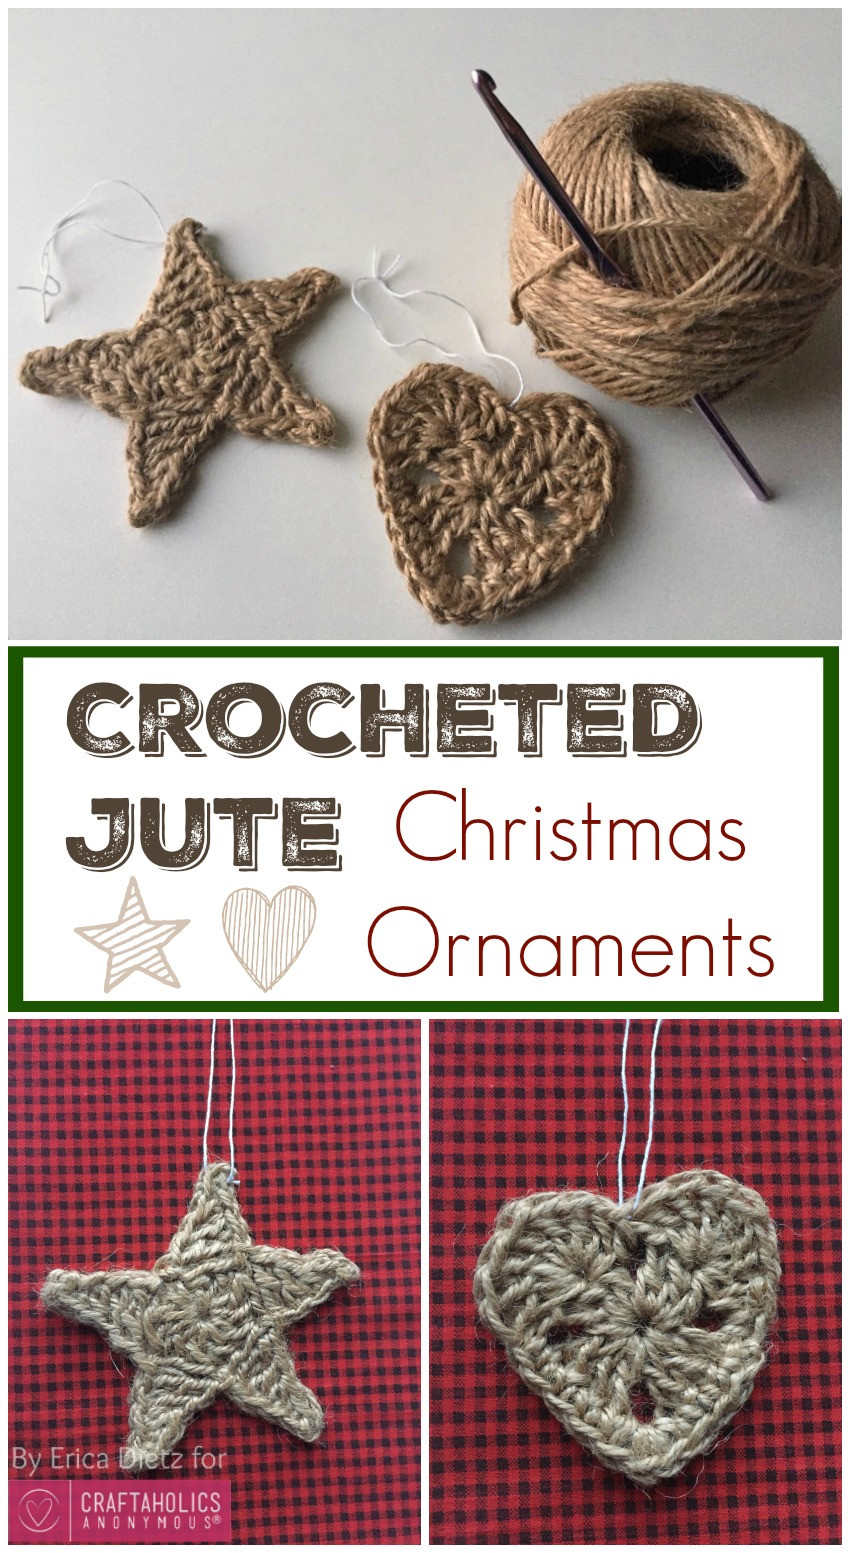 Best Of Craftaholics Anonymous Crochet Christmas Decorations Of Perfect 50 Ideas Crochet Christmas Decorations